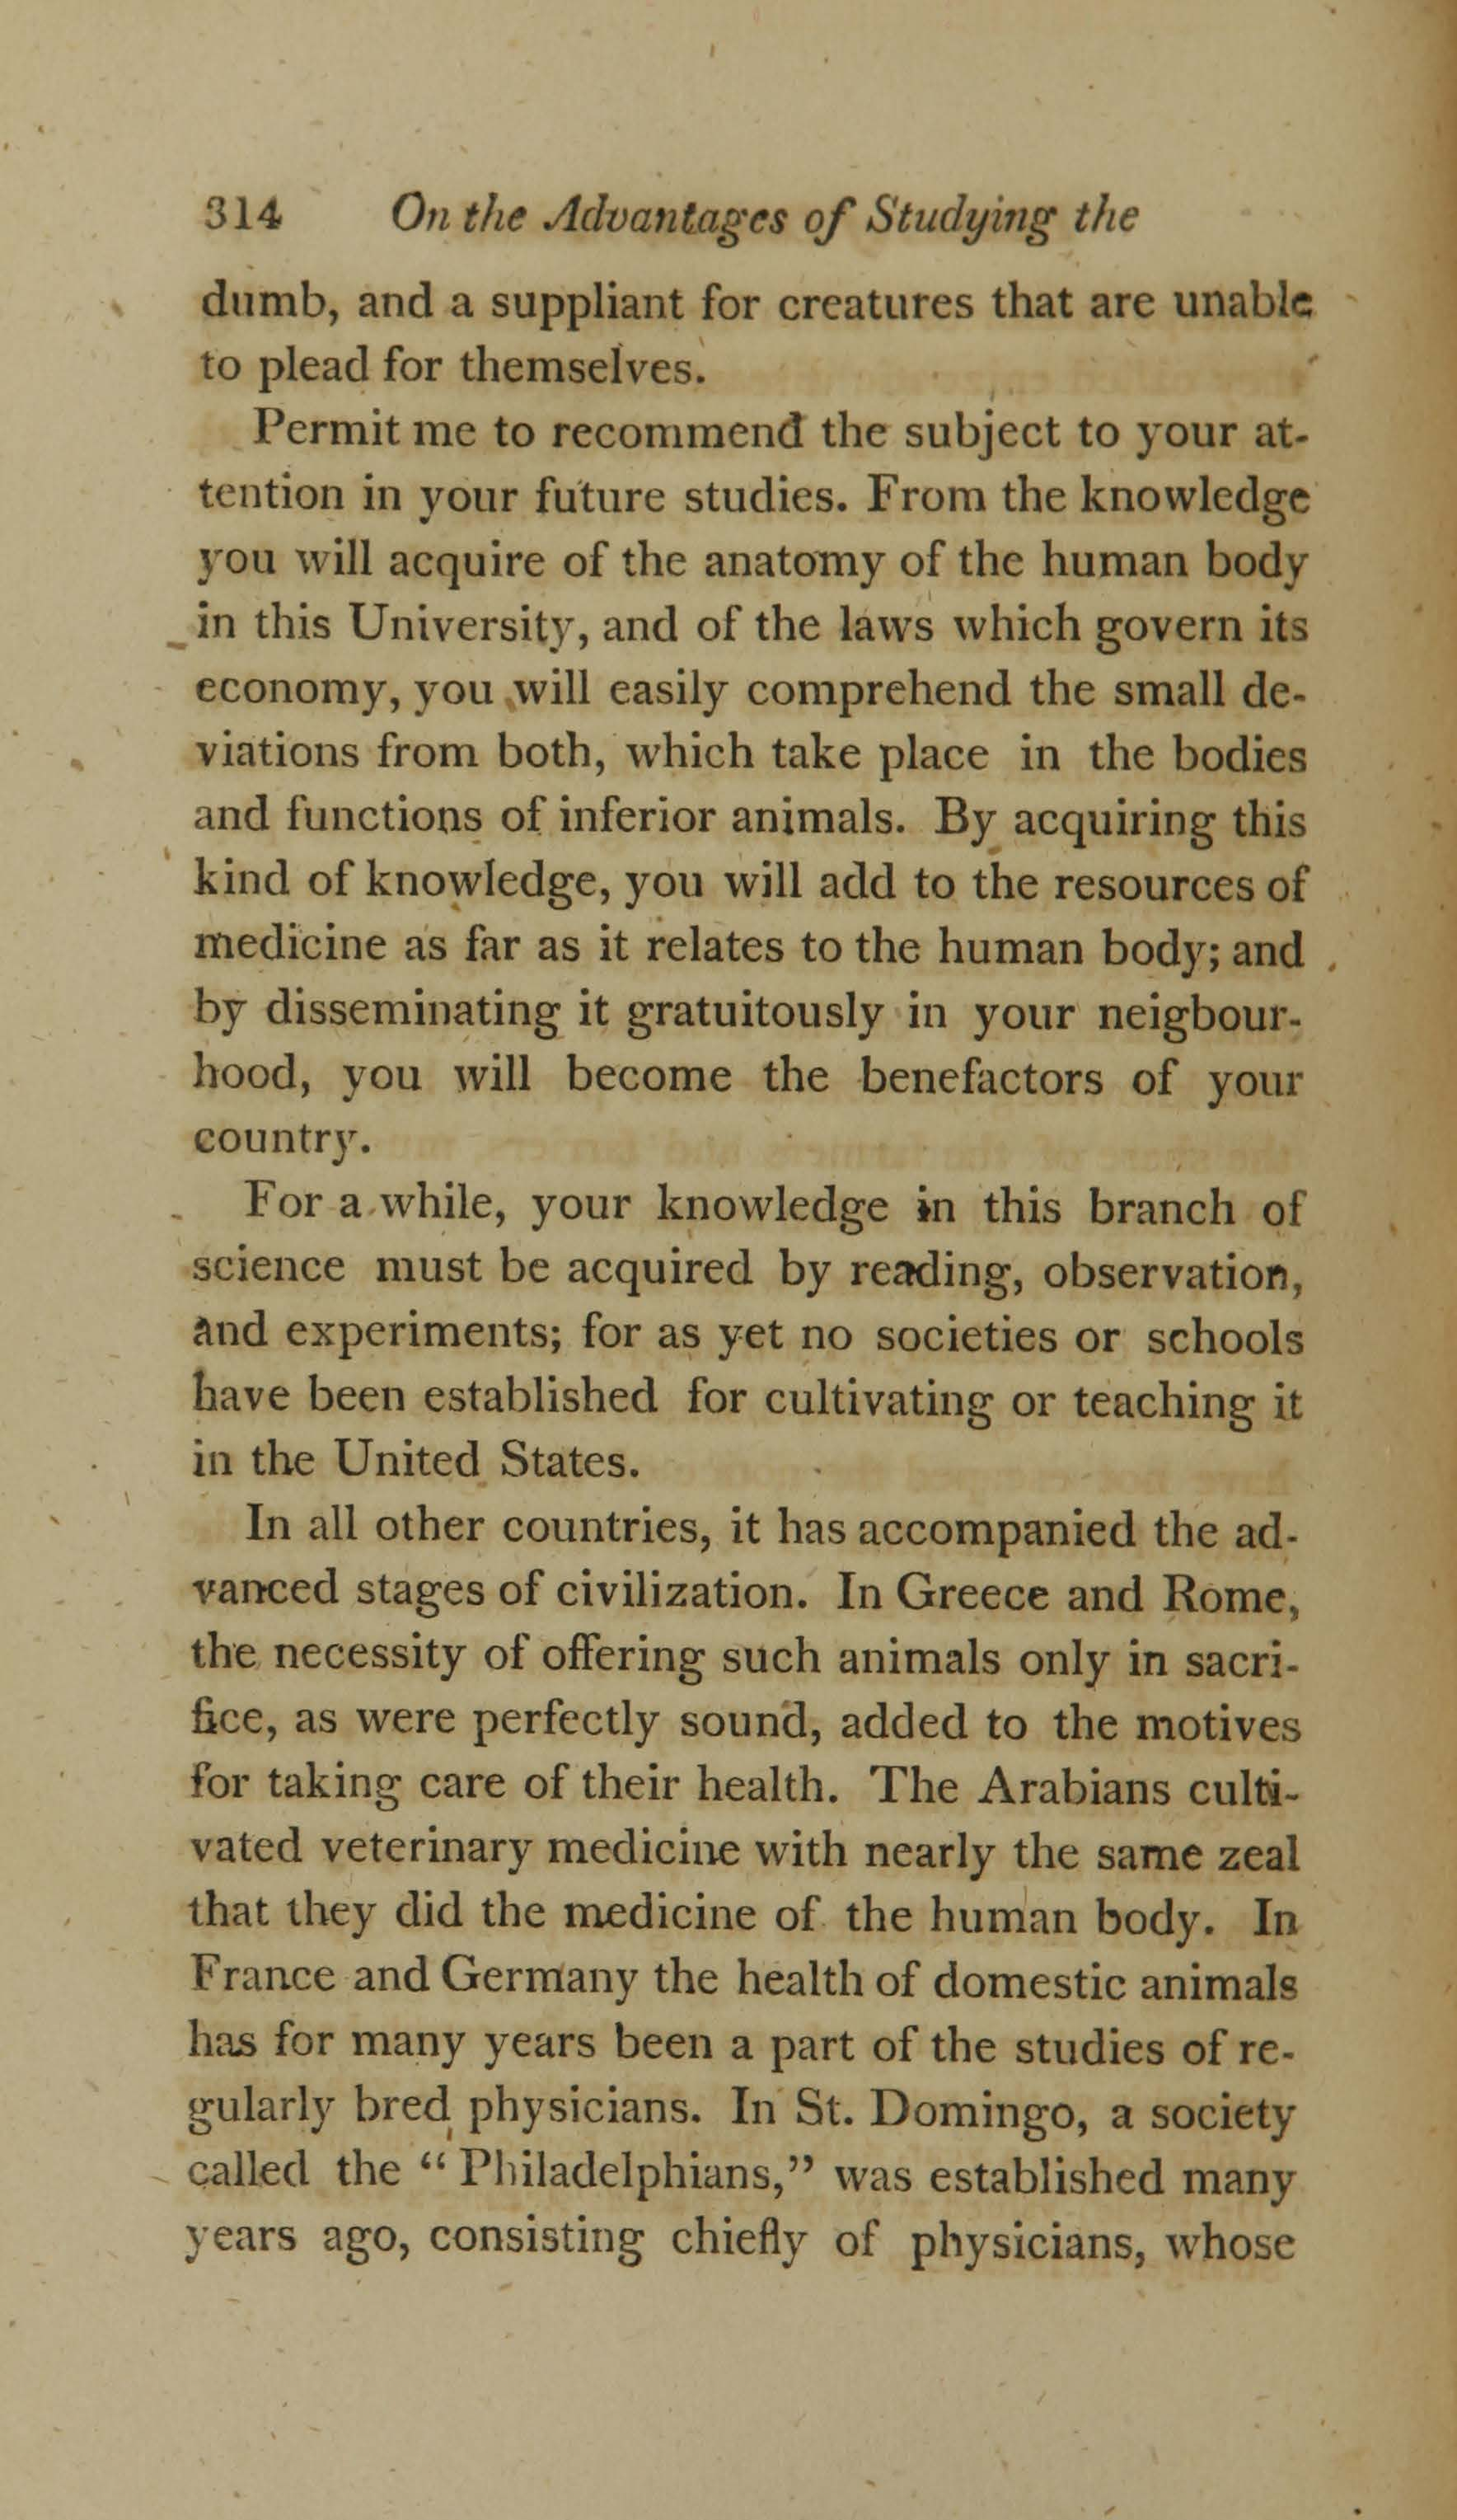 On the Duty and Advantages of Studying the Diseases of Domestic Animals (page 20)